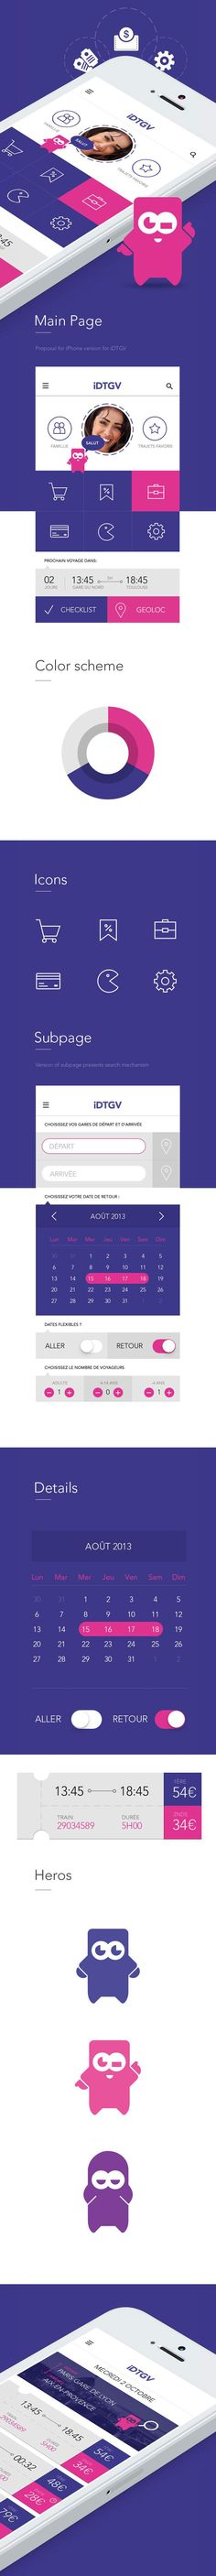 Design proposition application #mobile IDTGV, IOS7. If you like UX, design, or design thinking, check out theuxblog.com